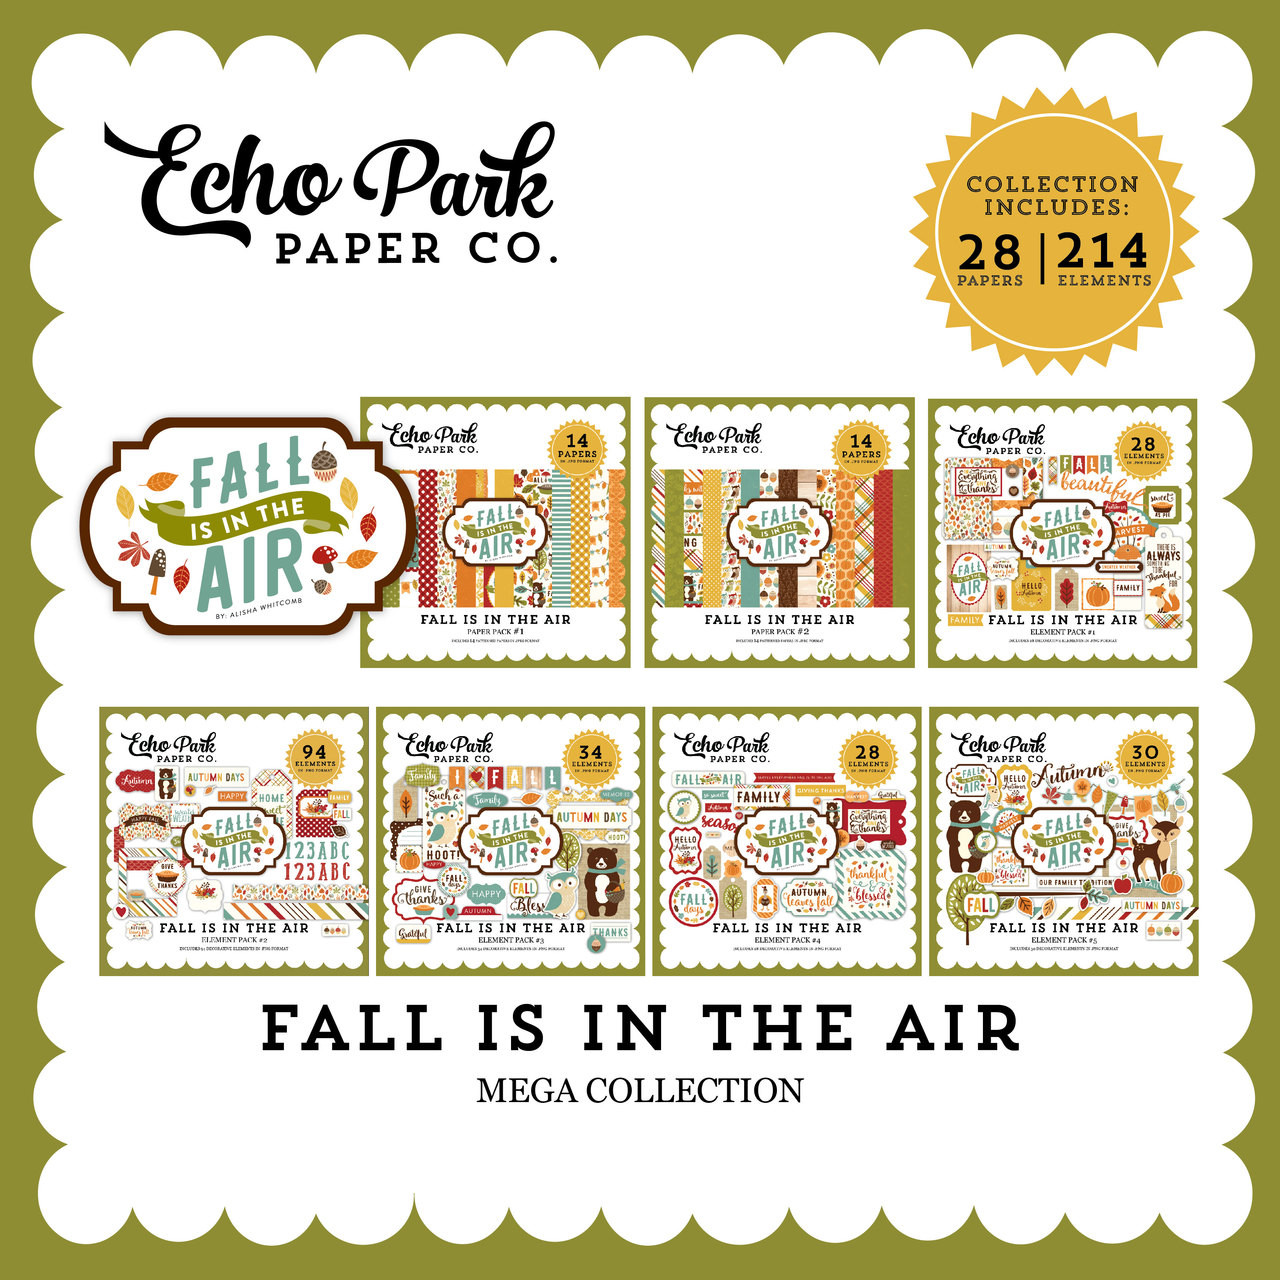 Fall is in the Air Mega Collection